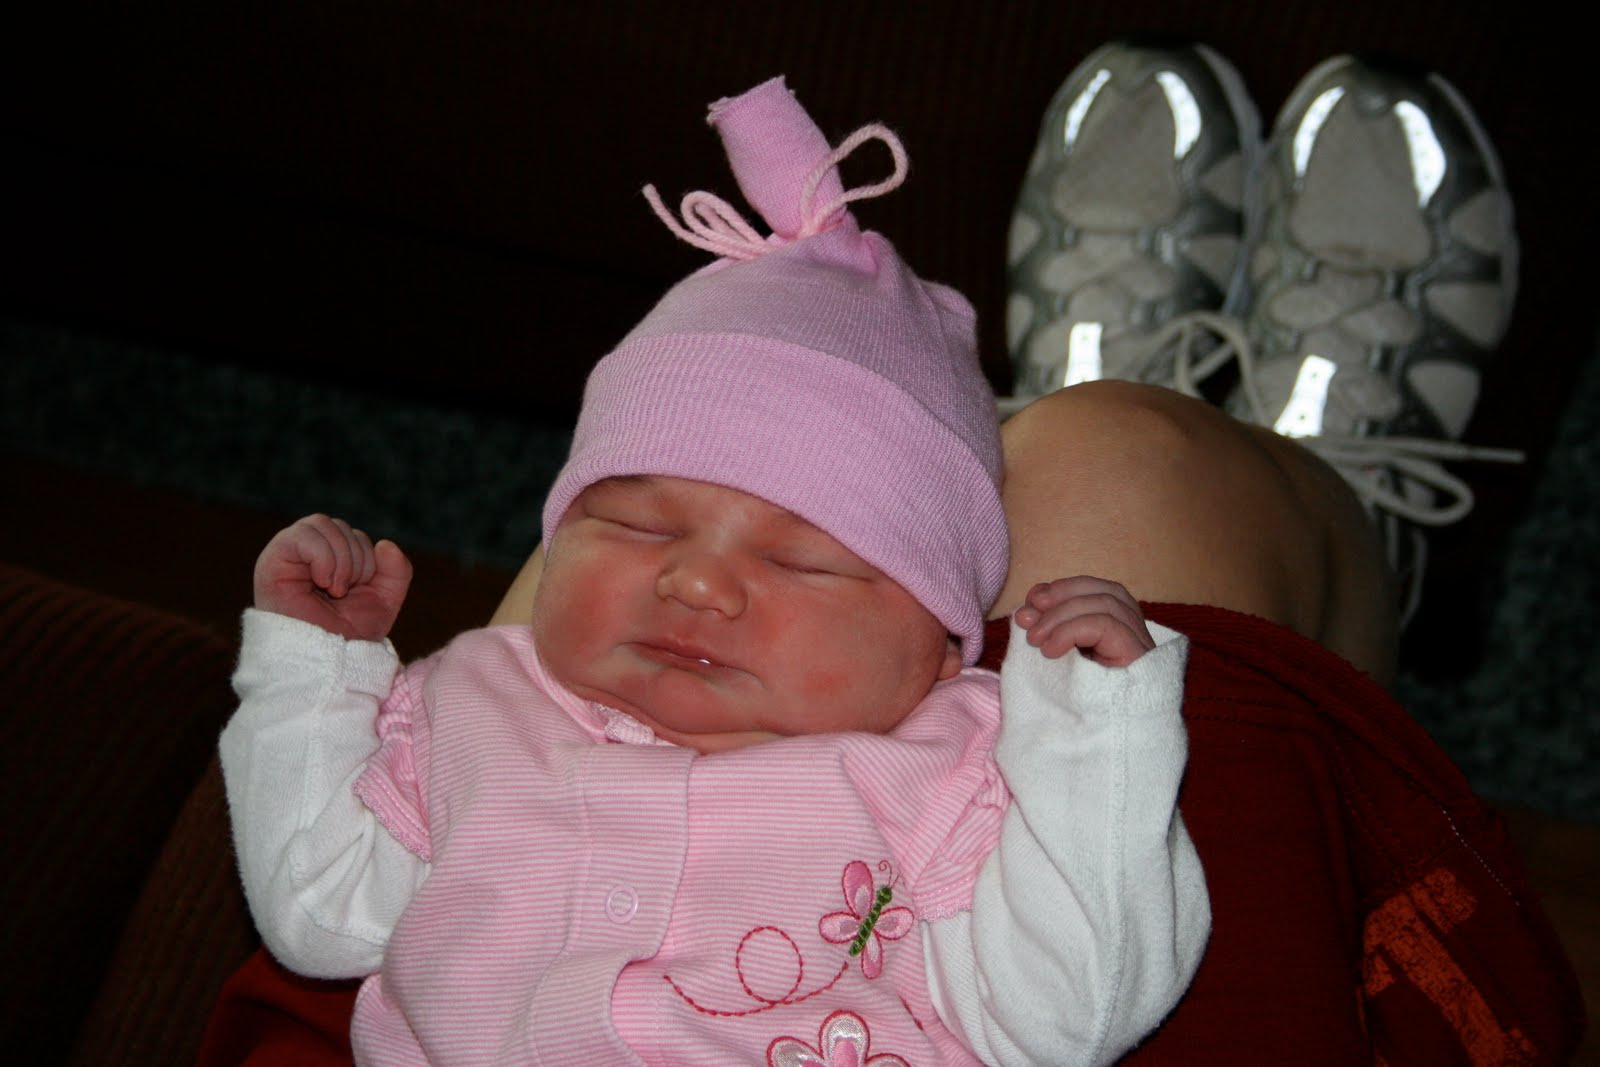 Year 1 Day Old Baby Girl Photo